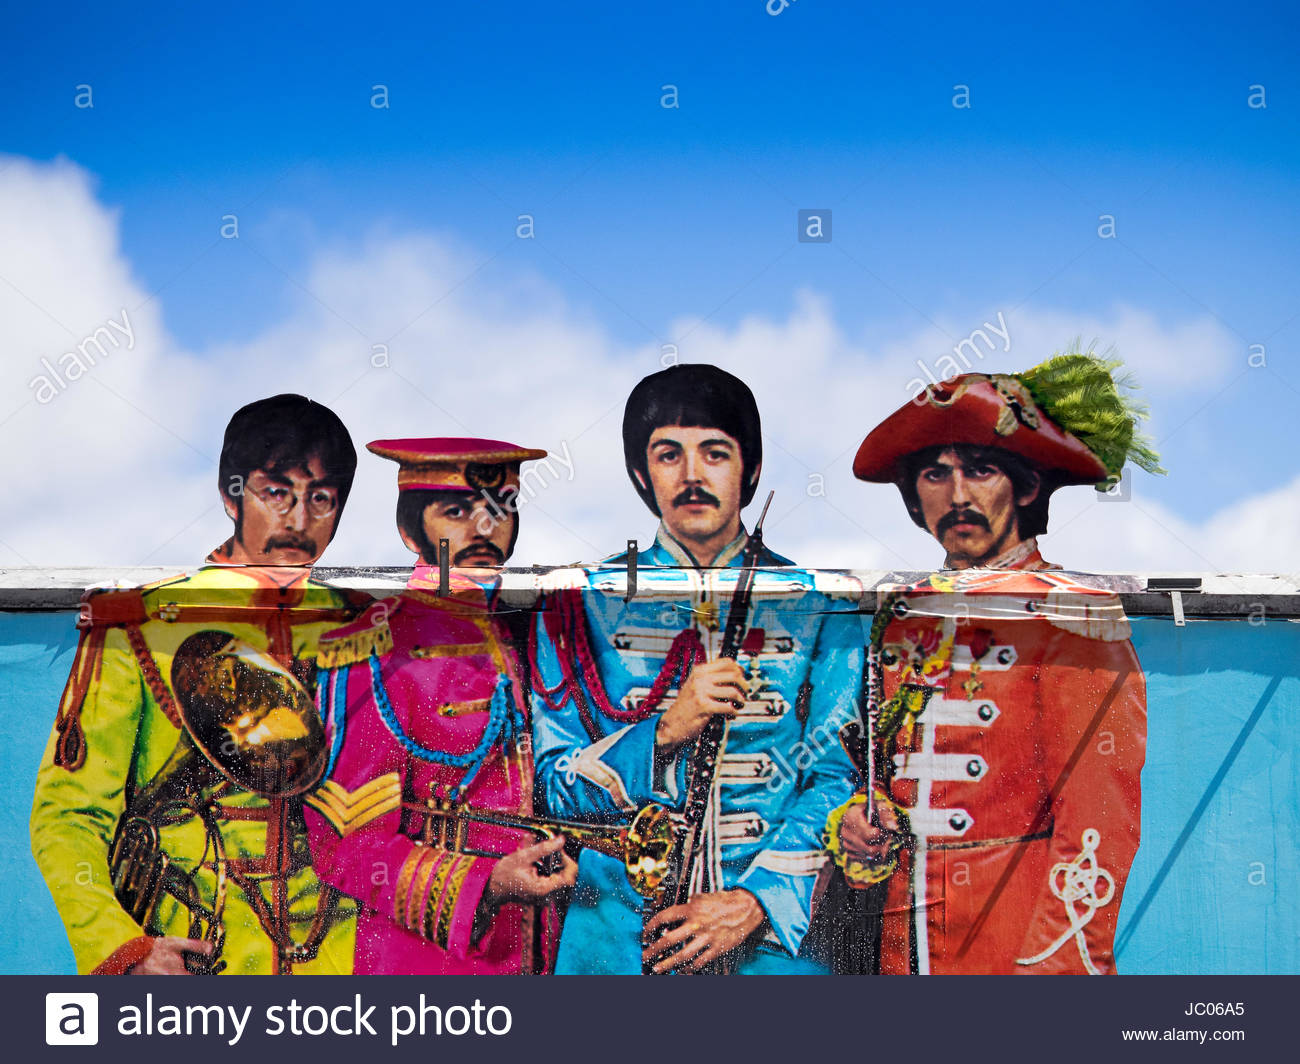 The Beatles on an unusual billboard in central London for the 50th anniversary relaunch of the Sgt Peppers album - Stock Image